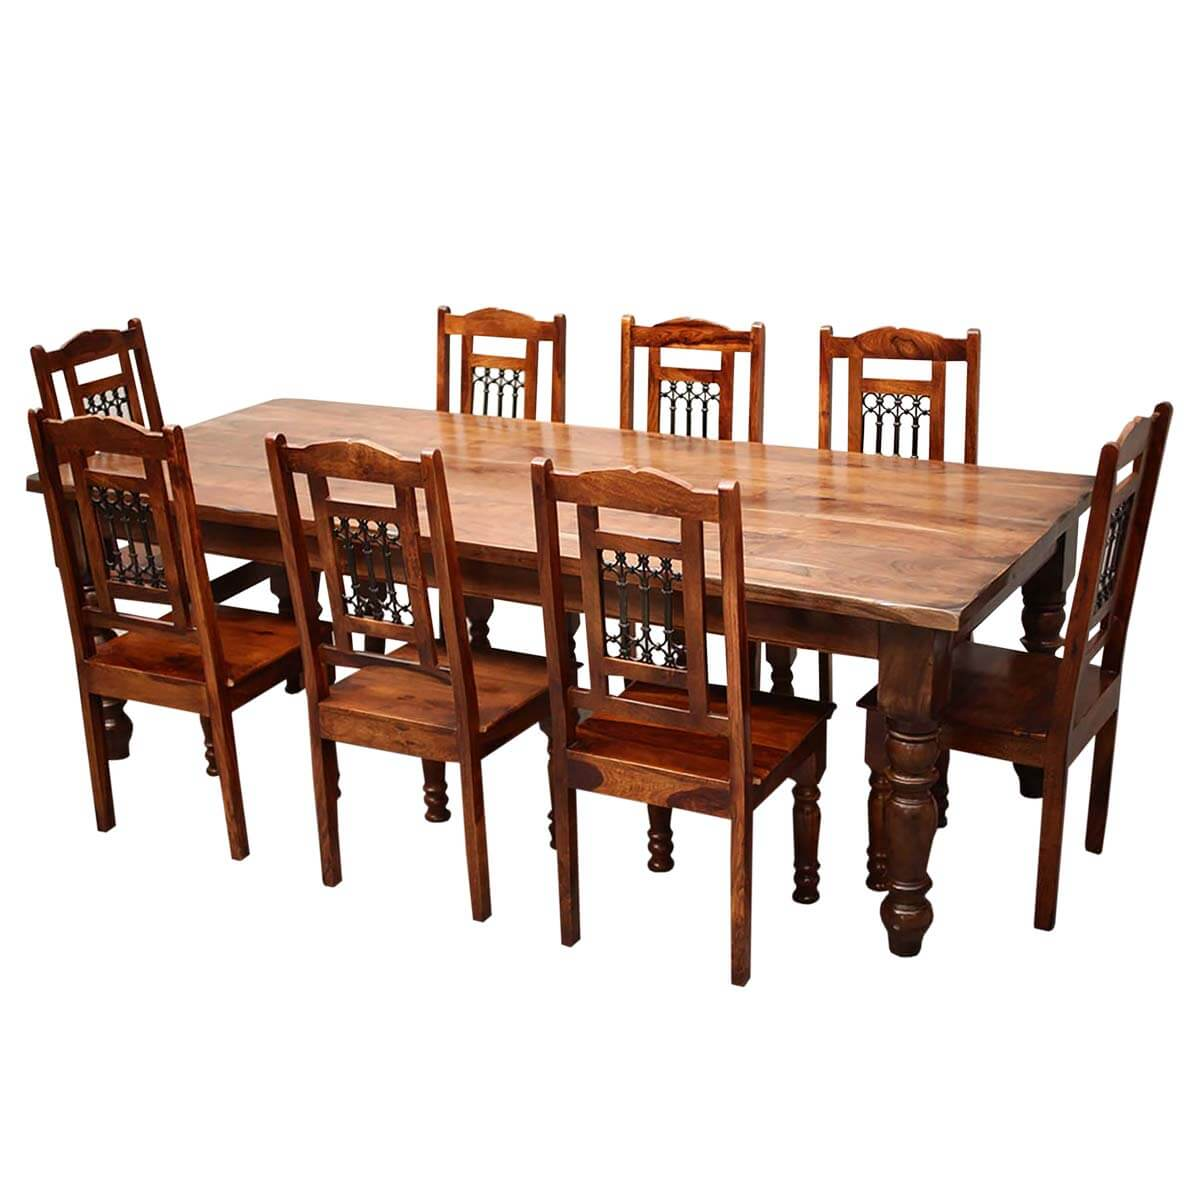 Rustic furniture solid wood large dining table 8 chair set for Solid wood dining table sets